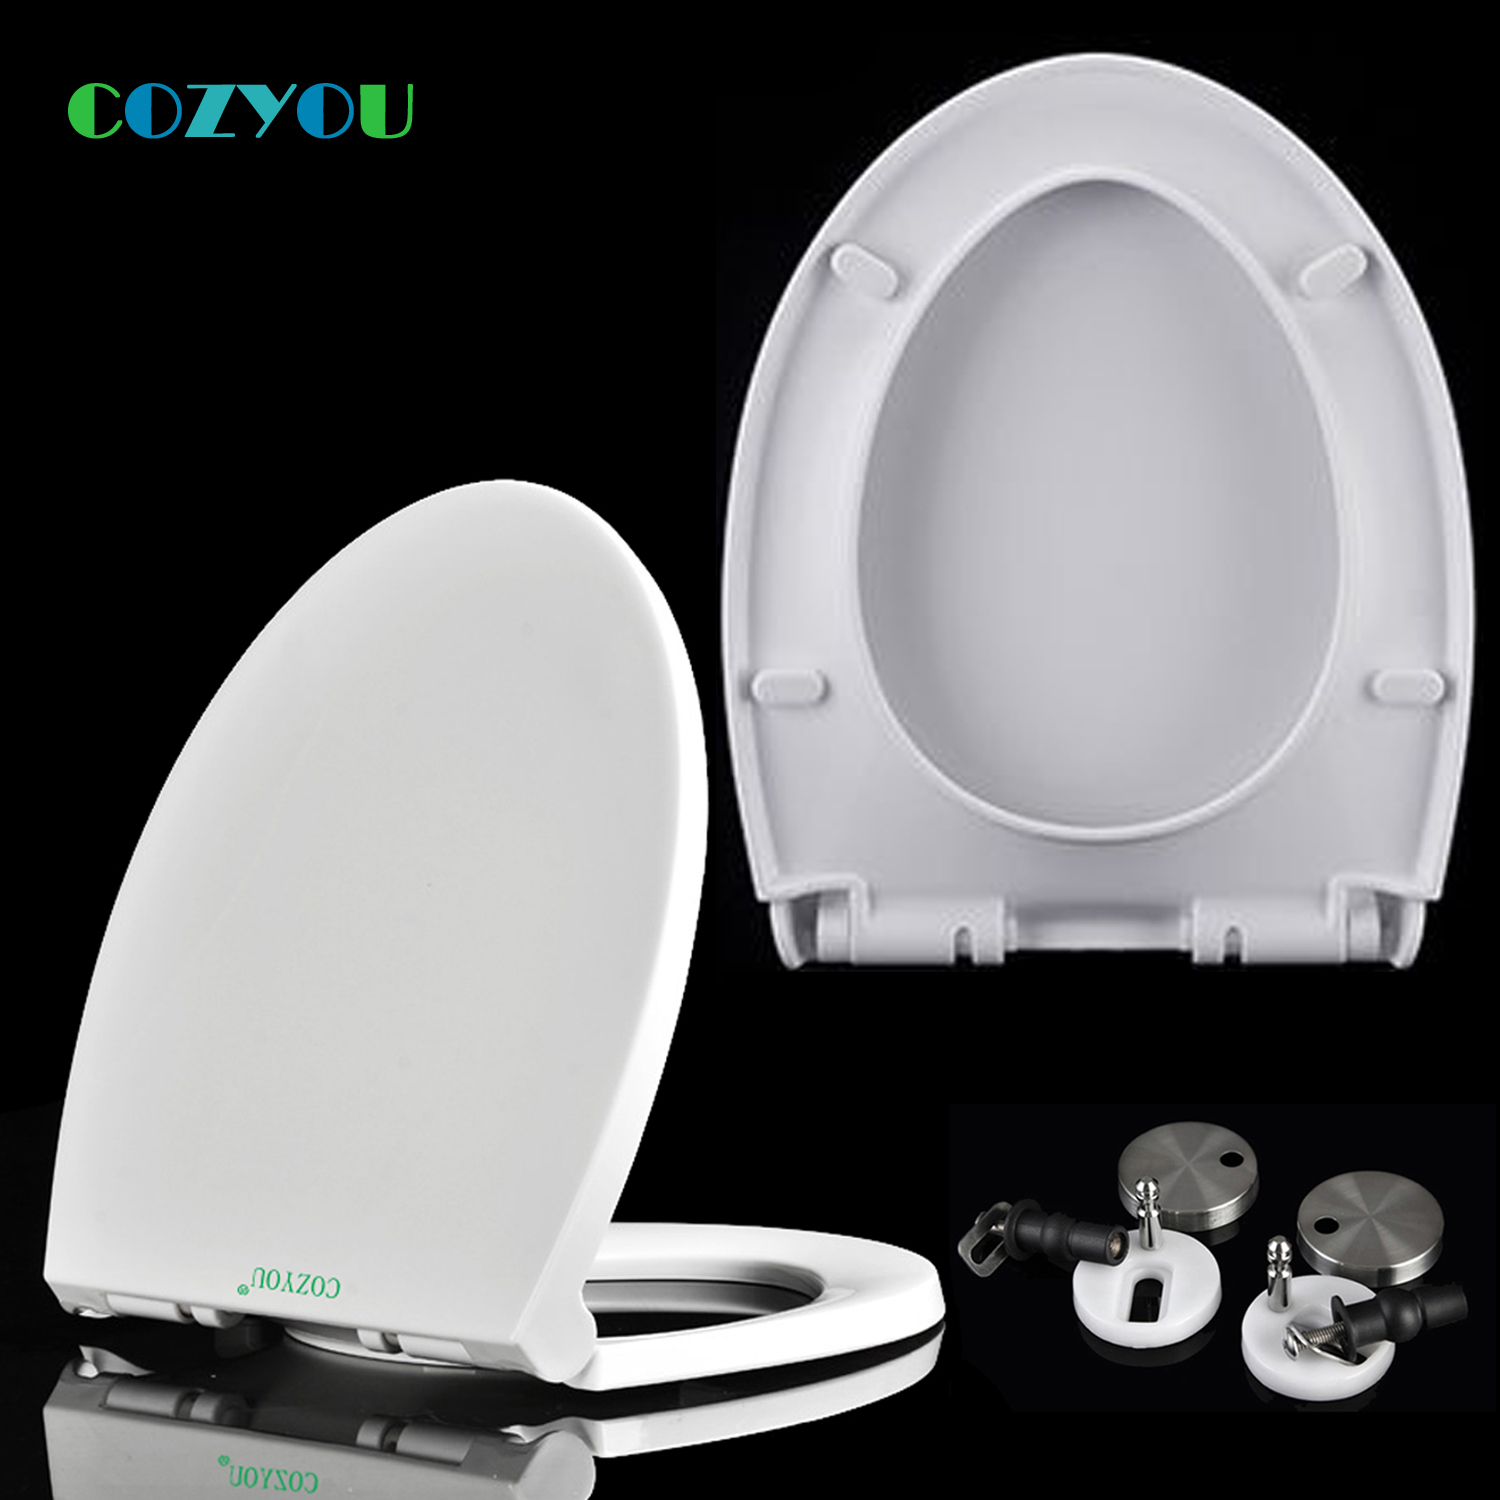 COZYOU Toilet seat V shape Slow Close PP toilet lid above installation Length 445mm - 500mm Width 355mm - 365mm GBP17271SV